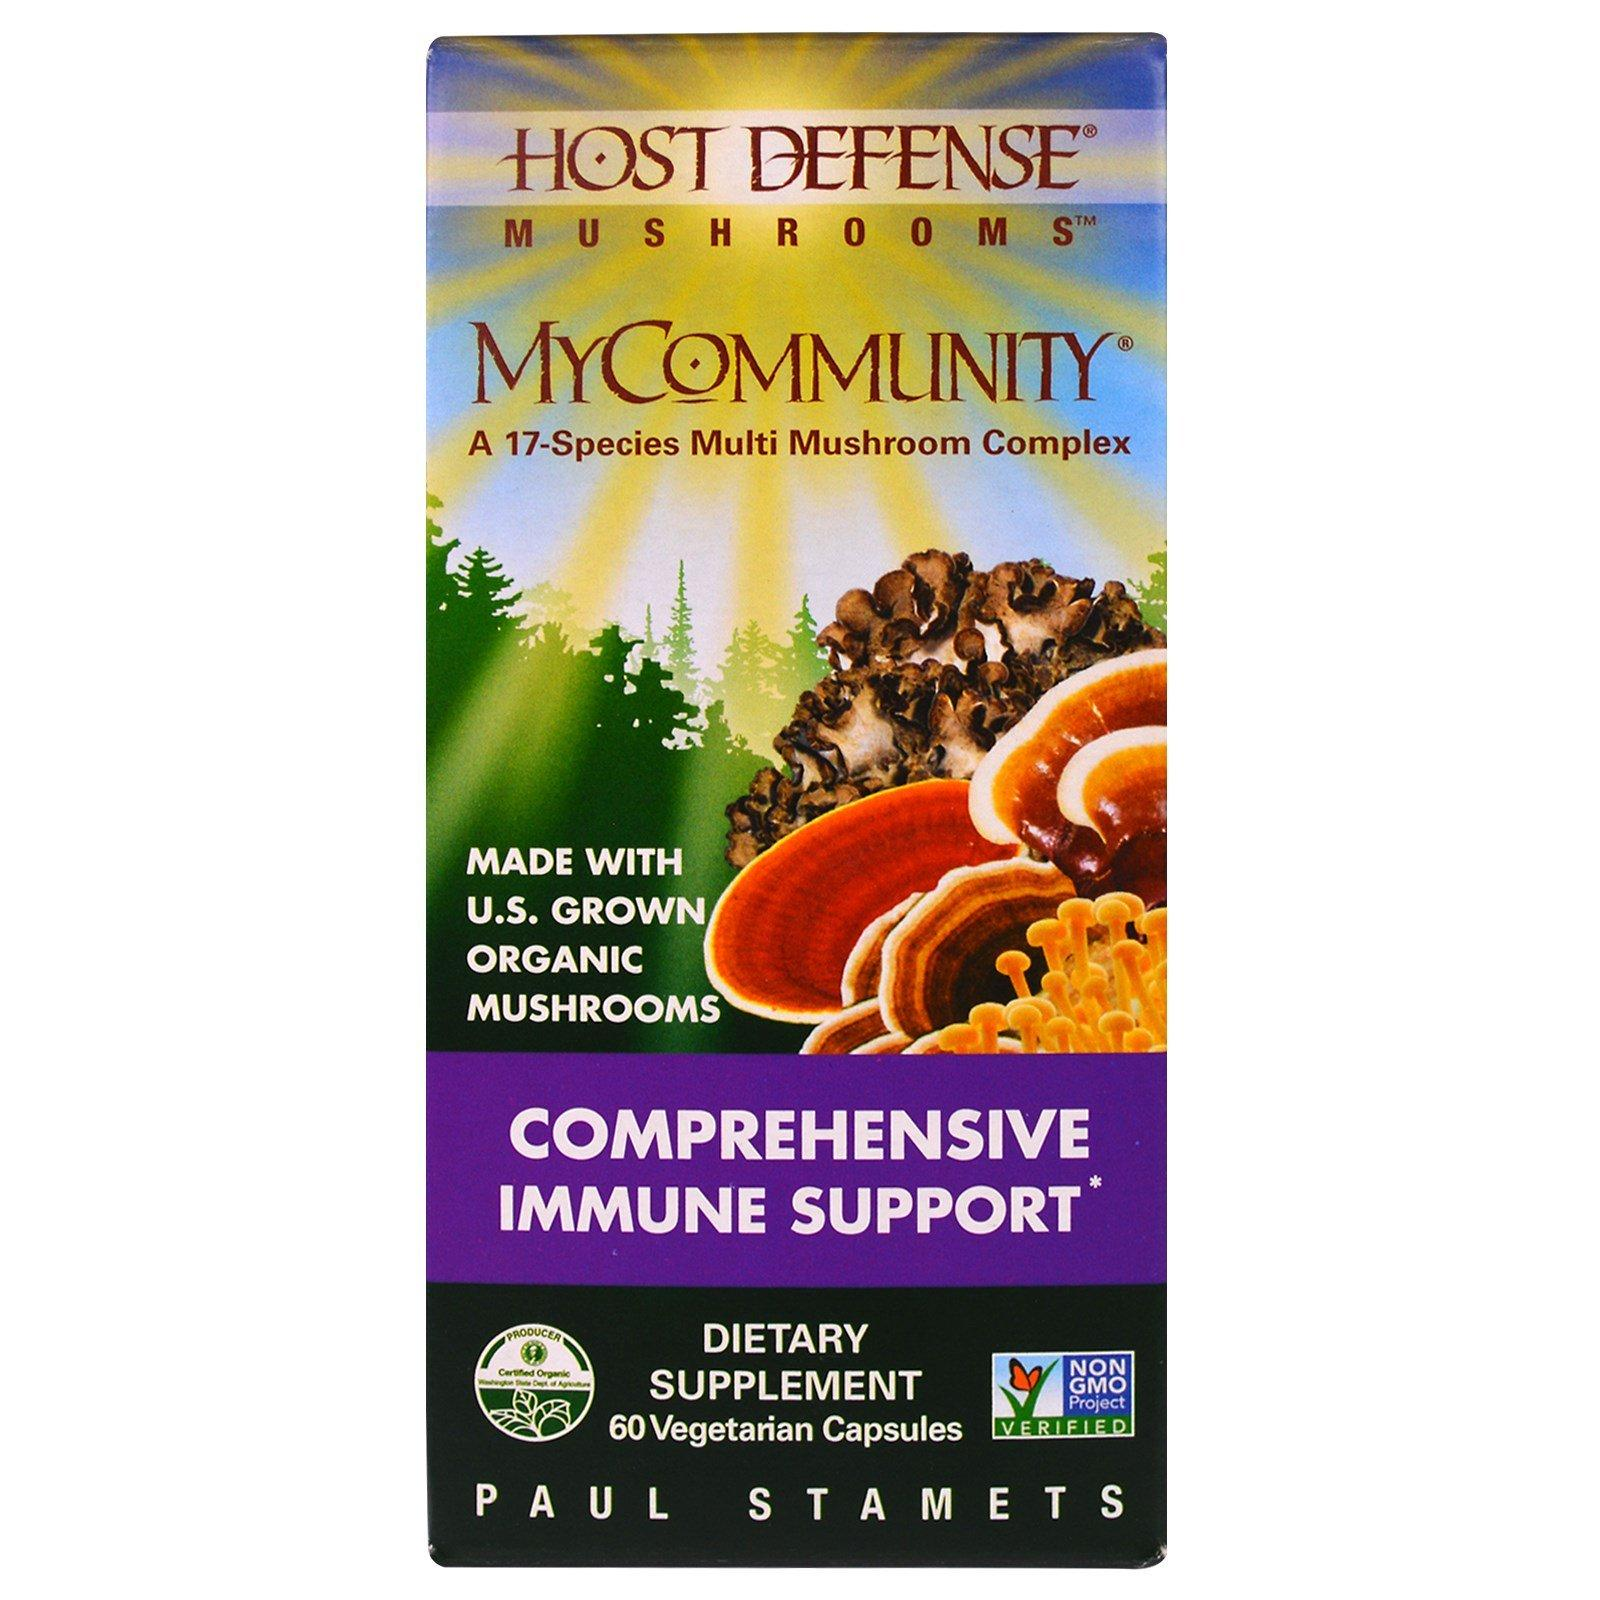 Supplements & Vitamins - Host Defense - Mycommunity, 60 Caps